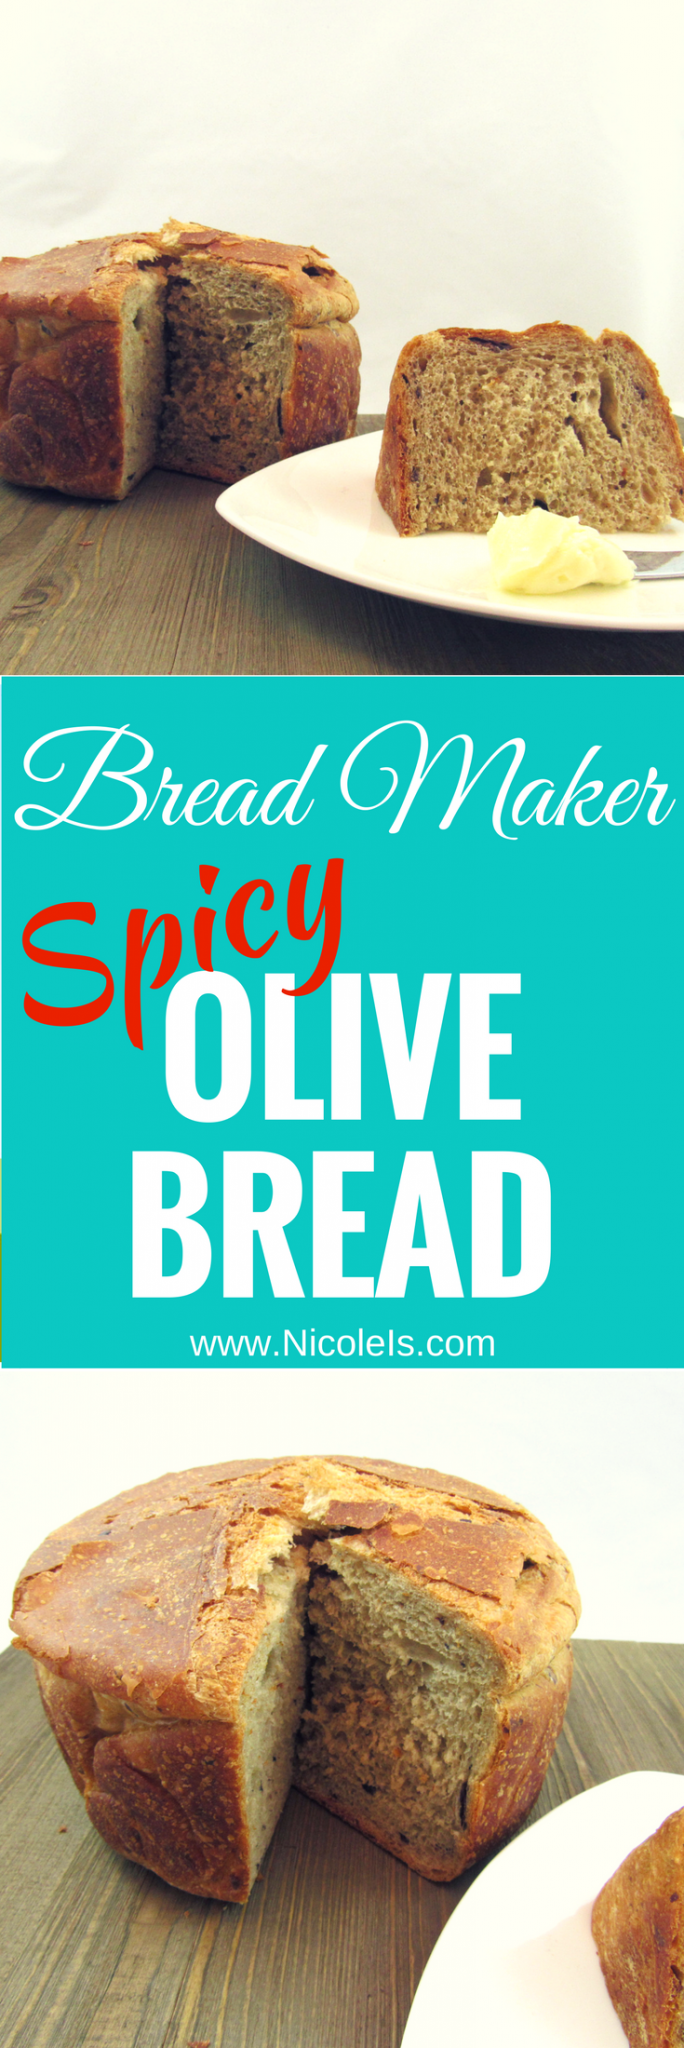 Bread Maker Spicy Olive Bread - super easy and delicious! www.NicoleIs.com | Bread Machine Recipes | Bread Maker Recipes | Bread Recipes | Baking Bread | Sandwich Bread | Sandwich Rolls | Lunch Recipes | Homemade Bread | Baking | No Knead Bread |